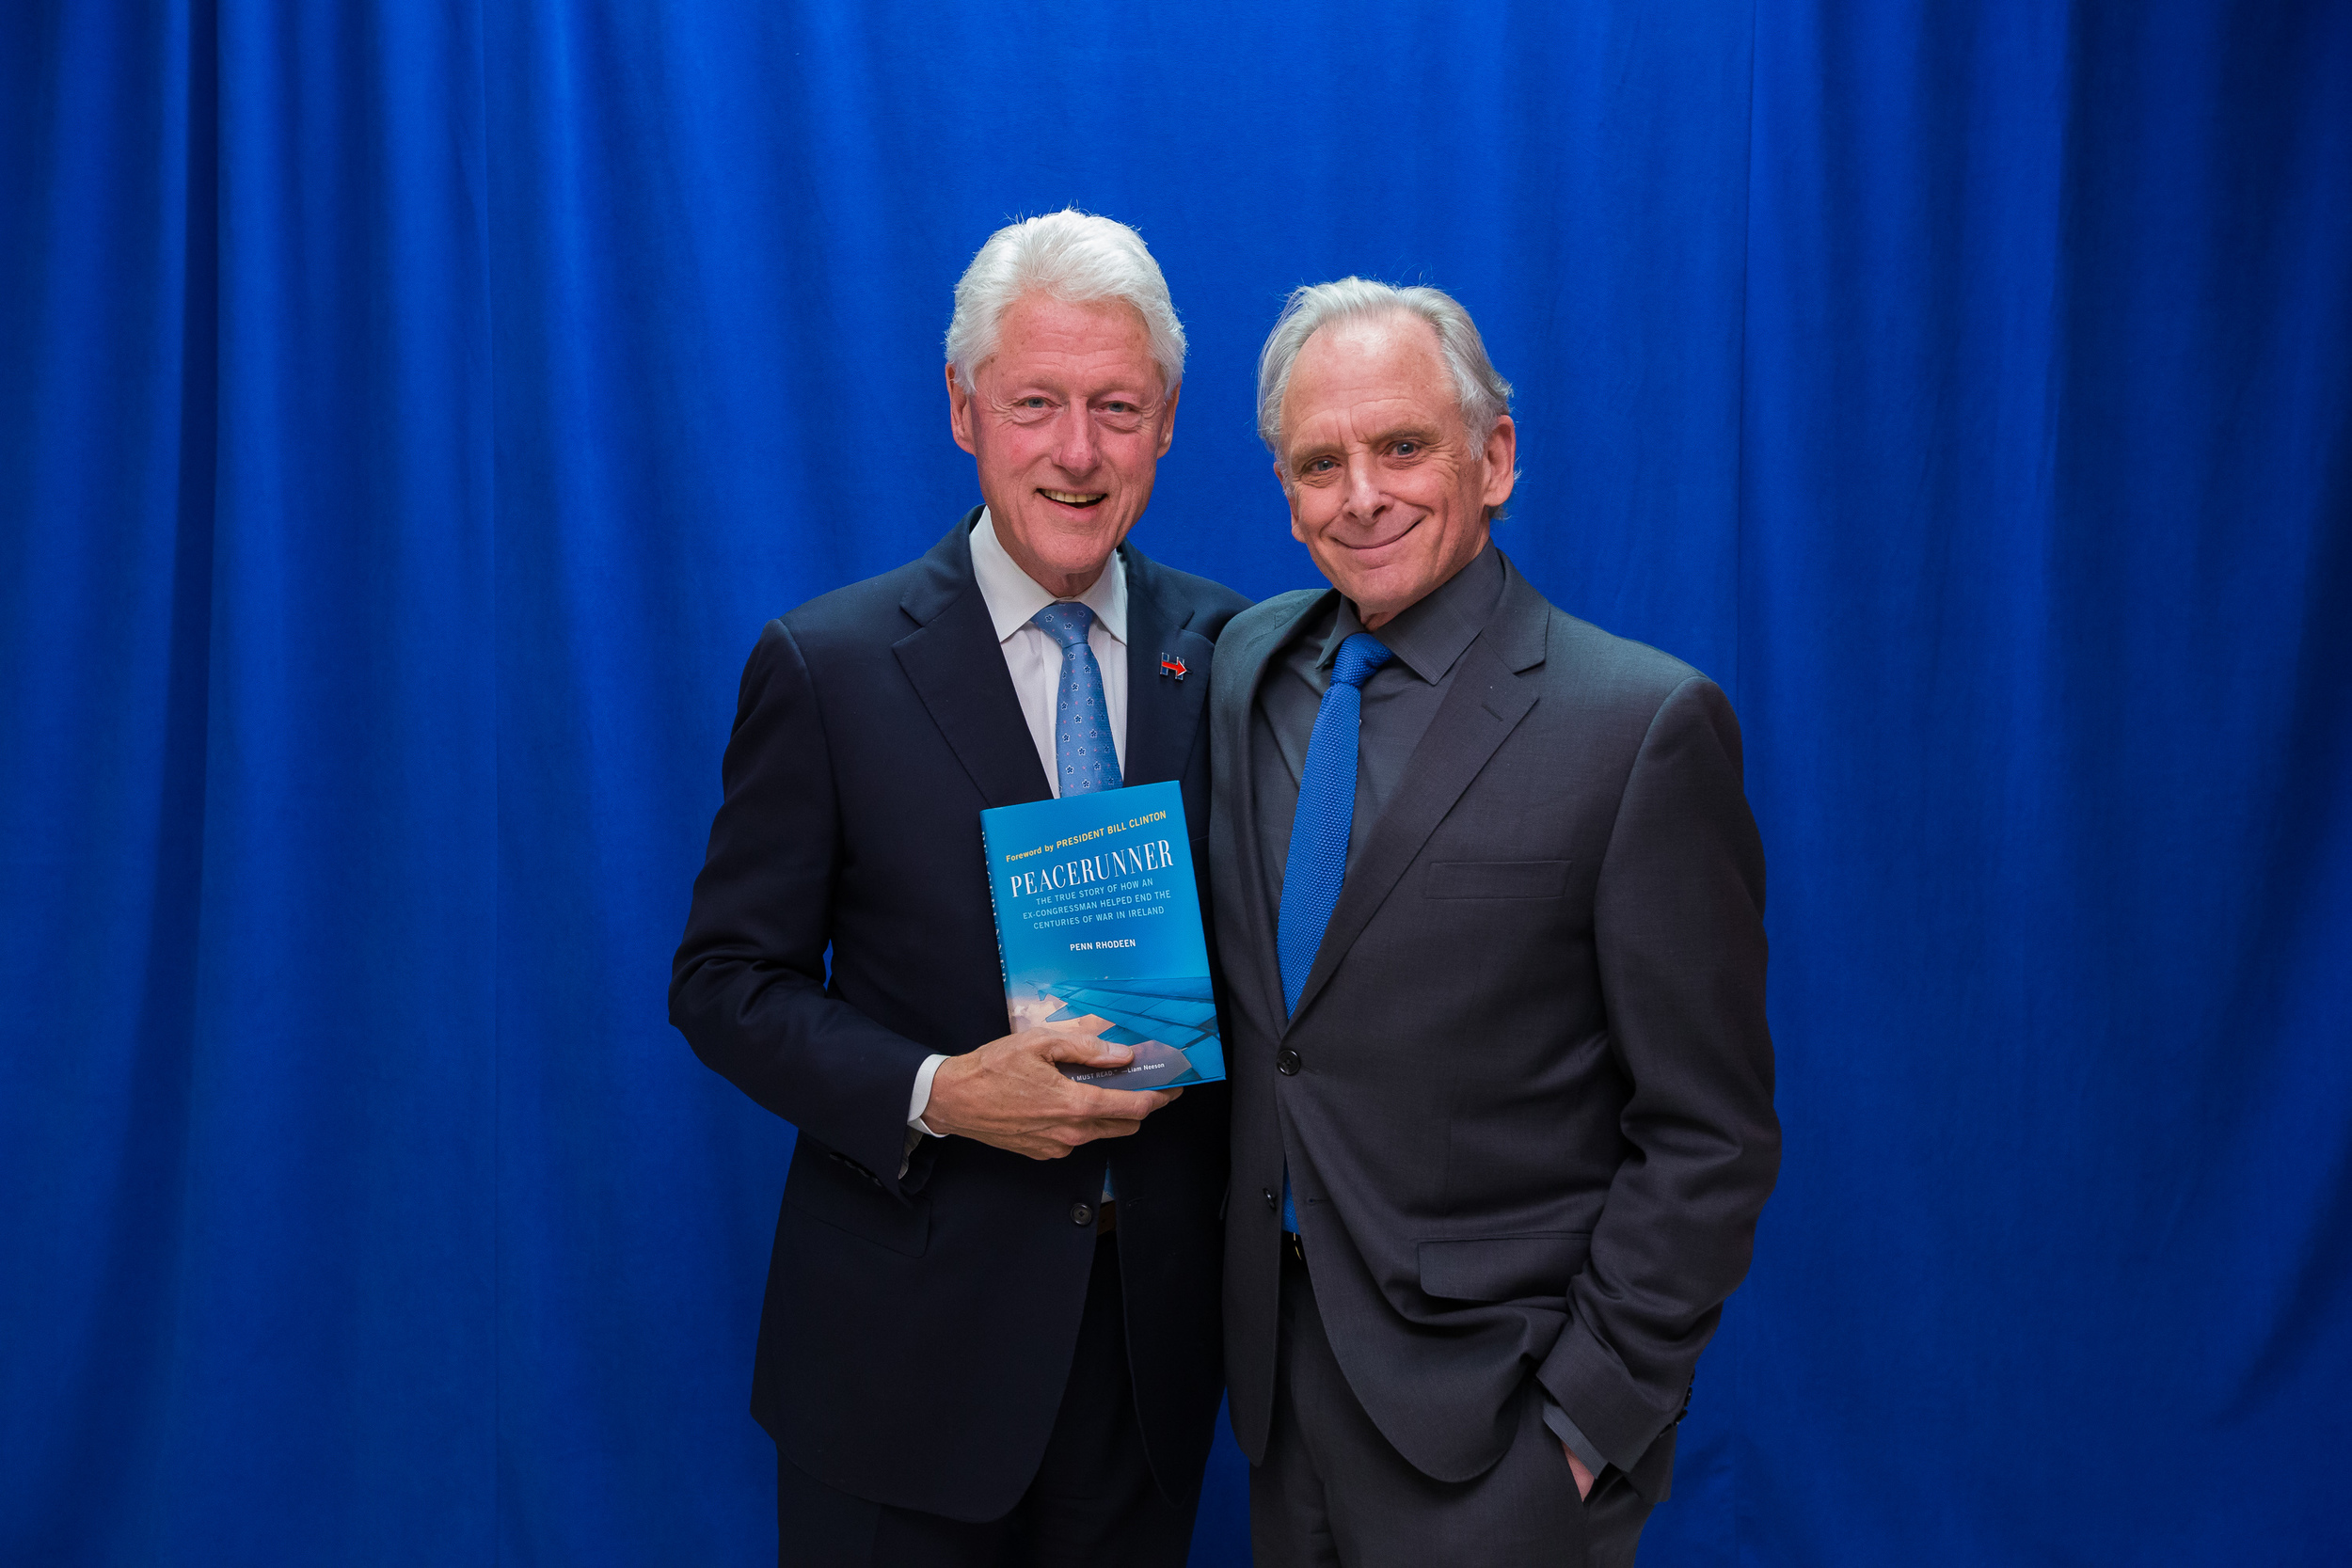 The author with President Bill Clinton in May